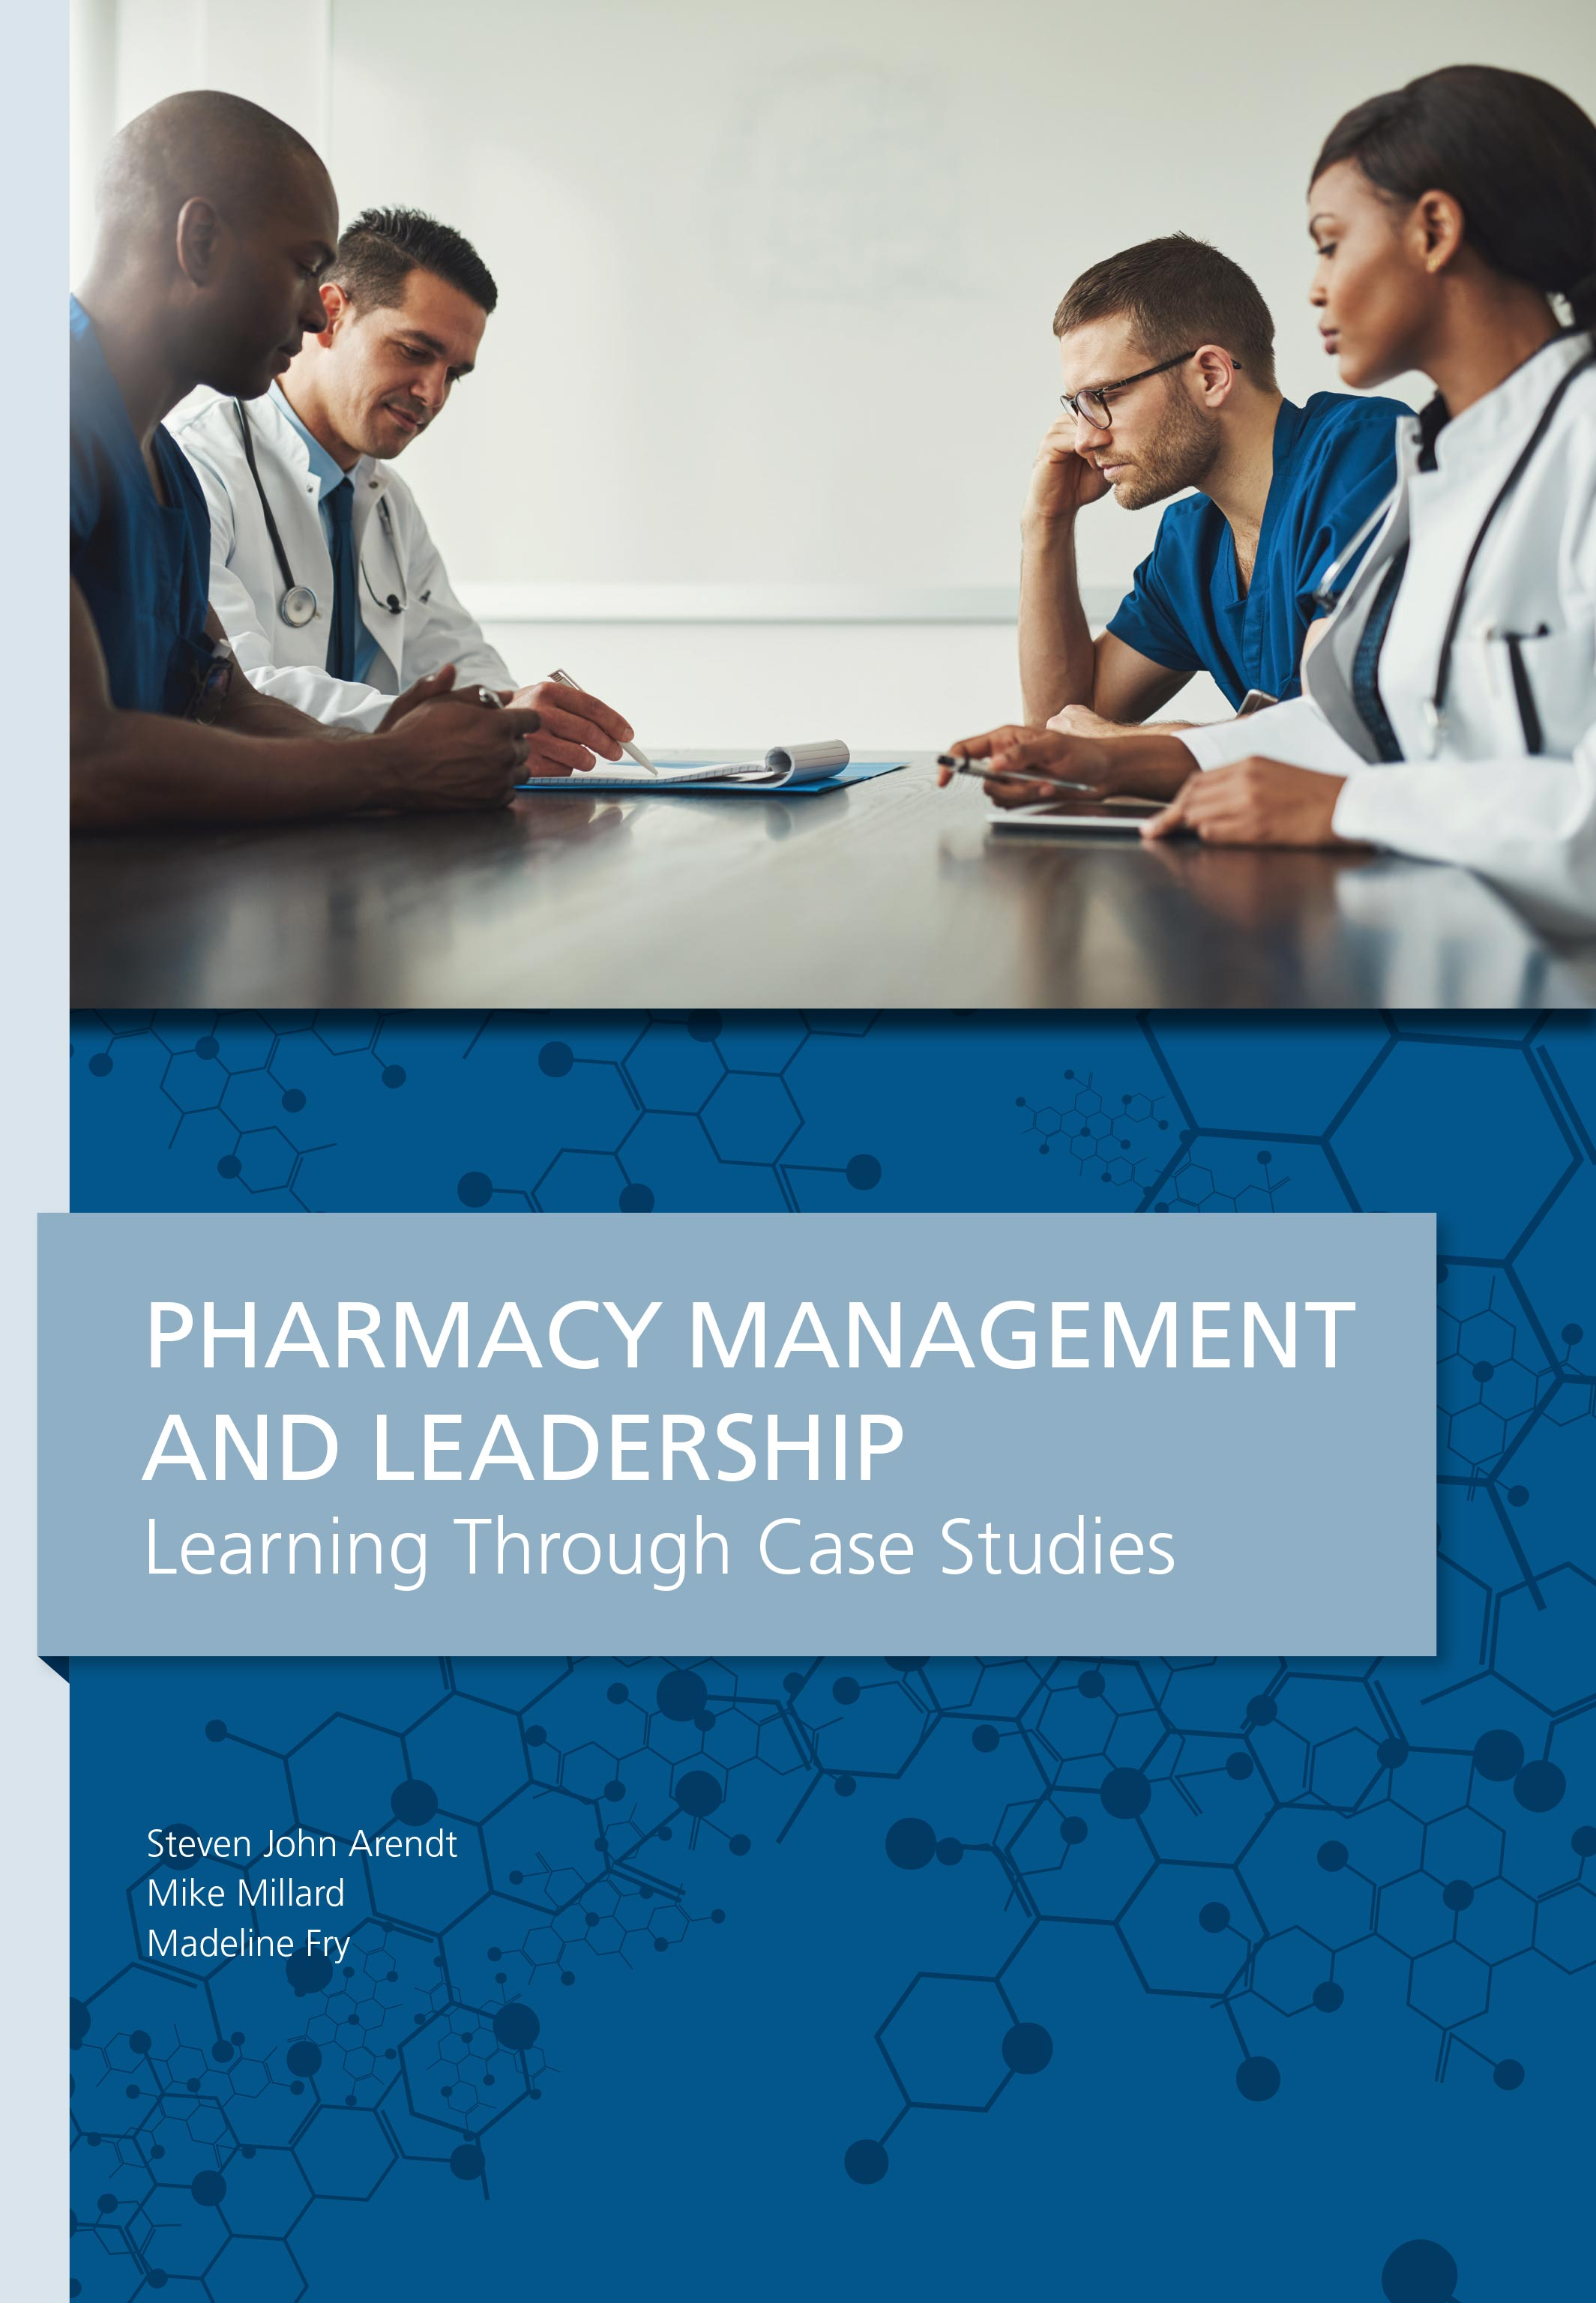 Pharmacy Management & Leadership Learning Through Case Studies